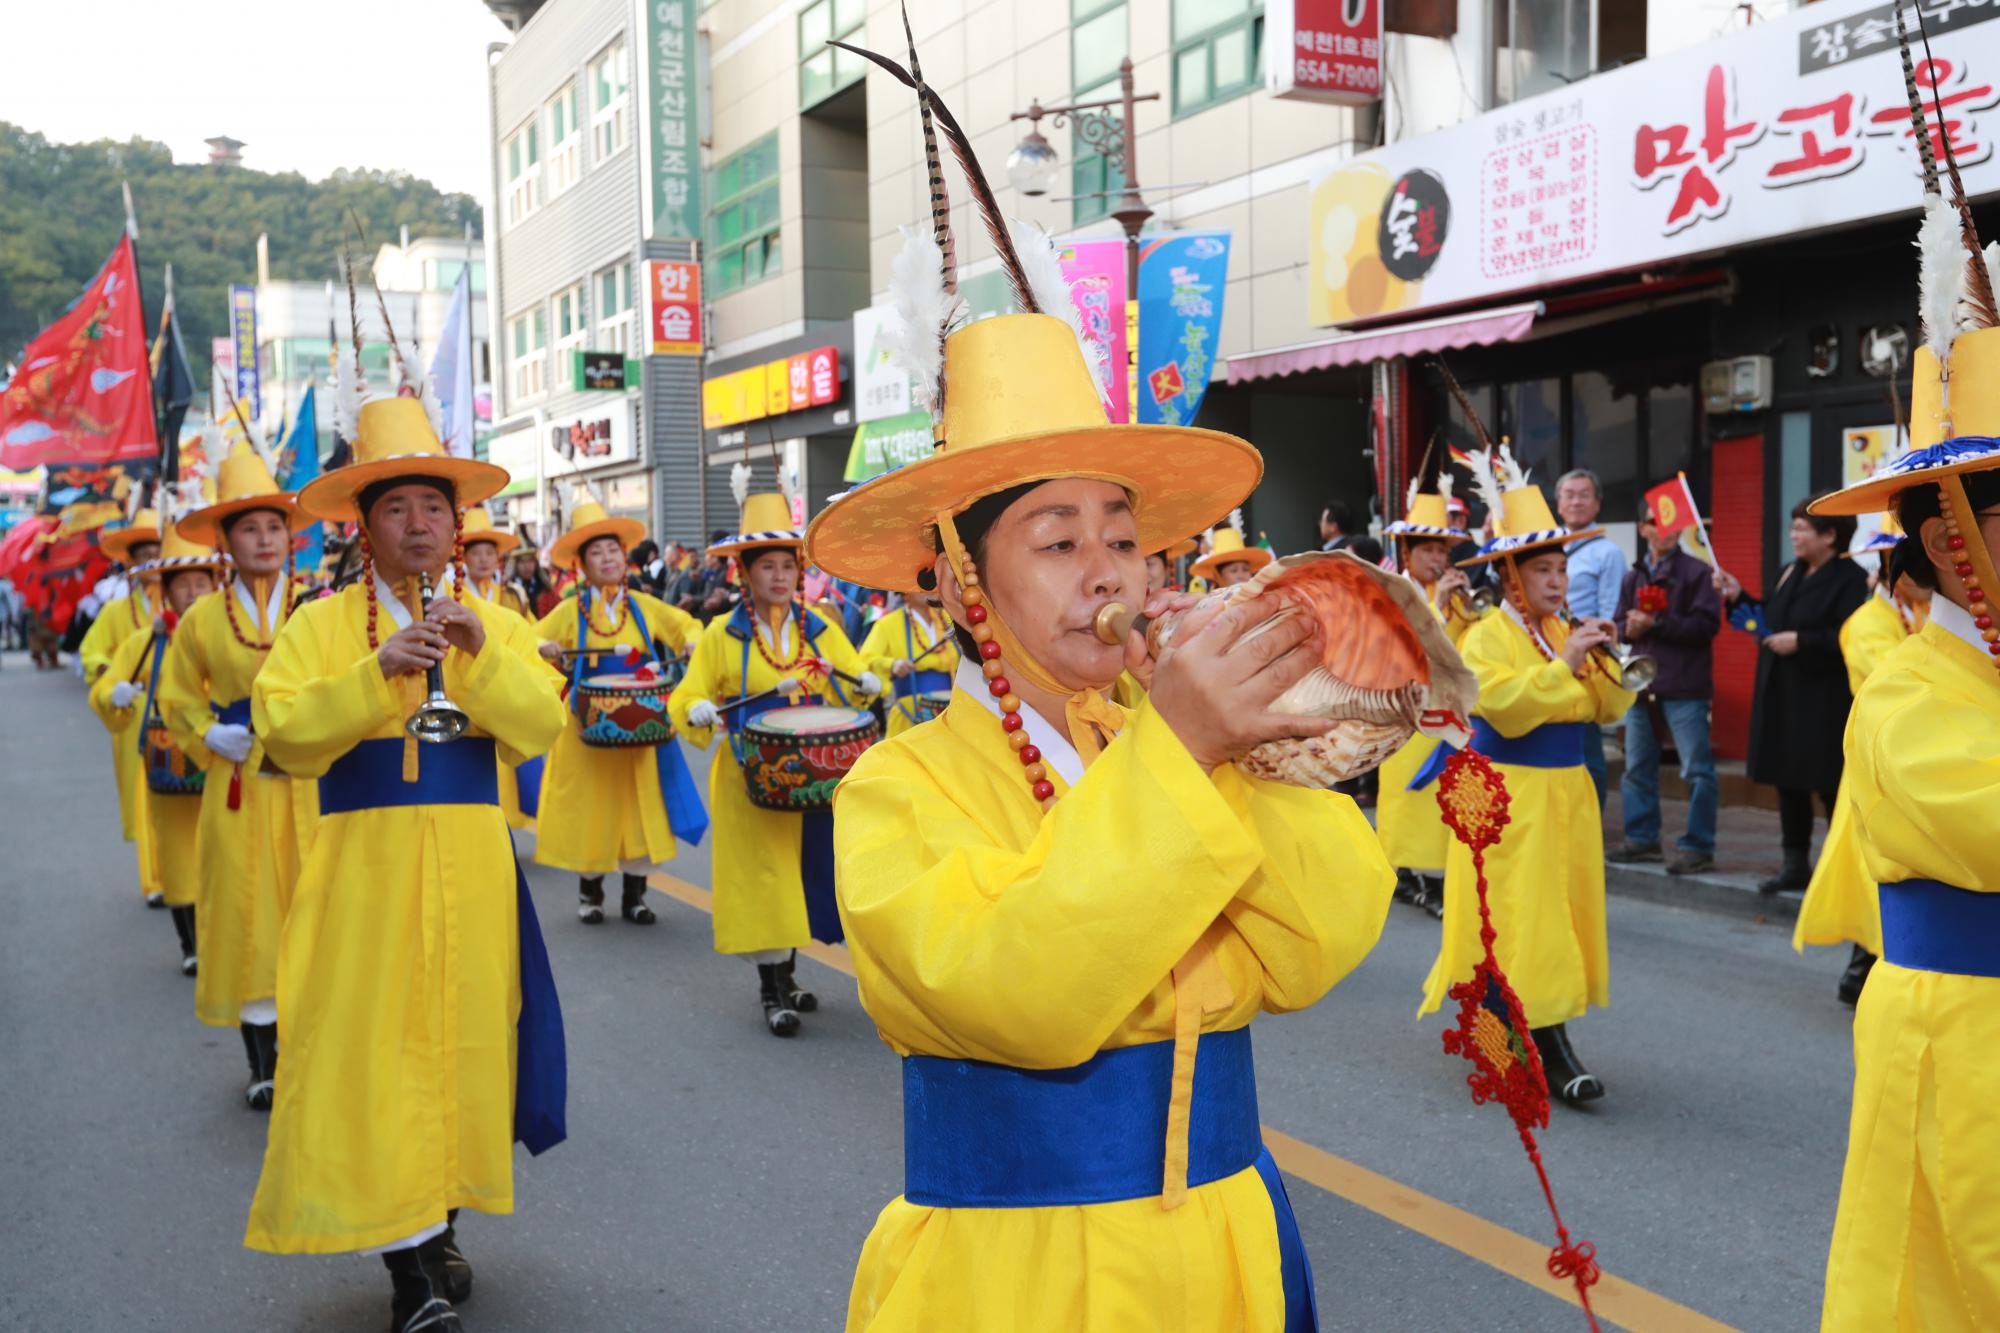 Third Yecheon World Archery Festival Street Parade(2017. 10. 13.)